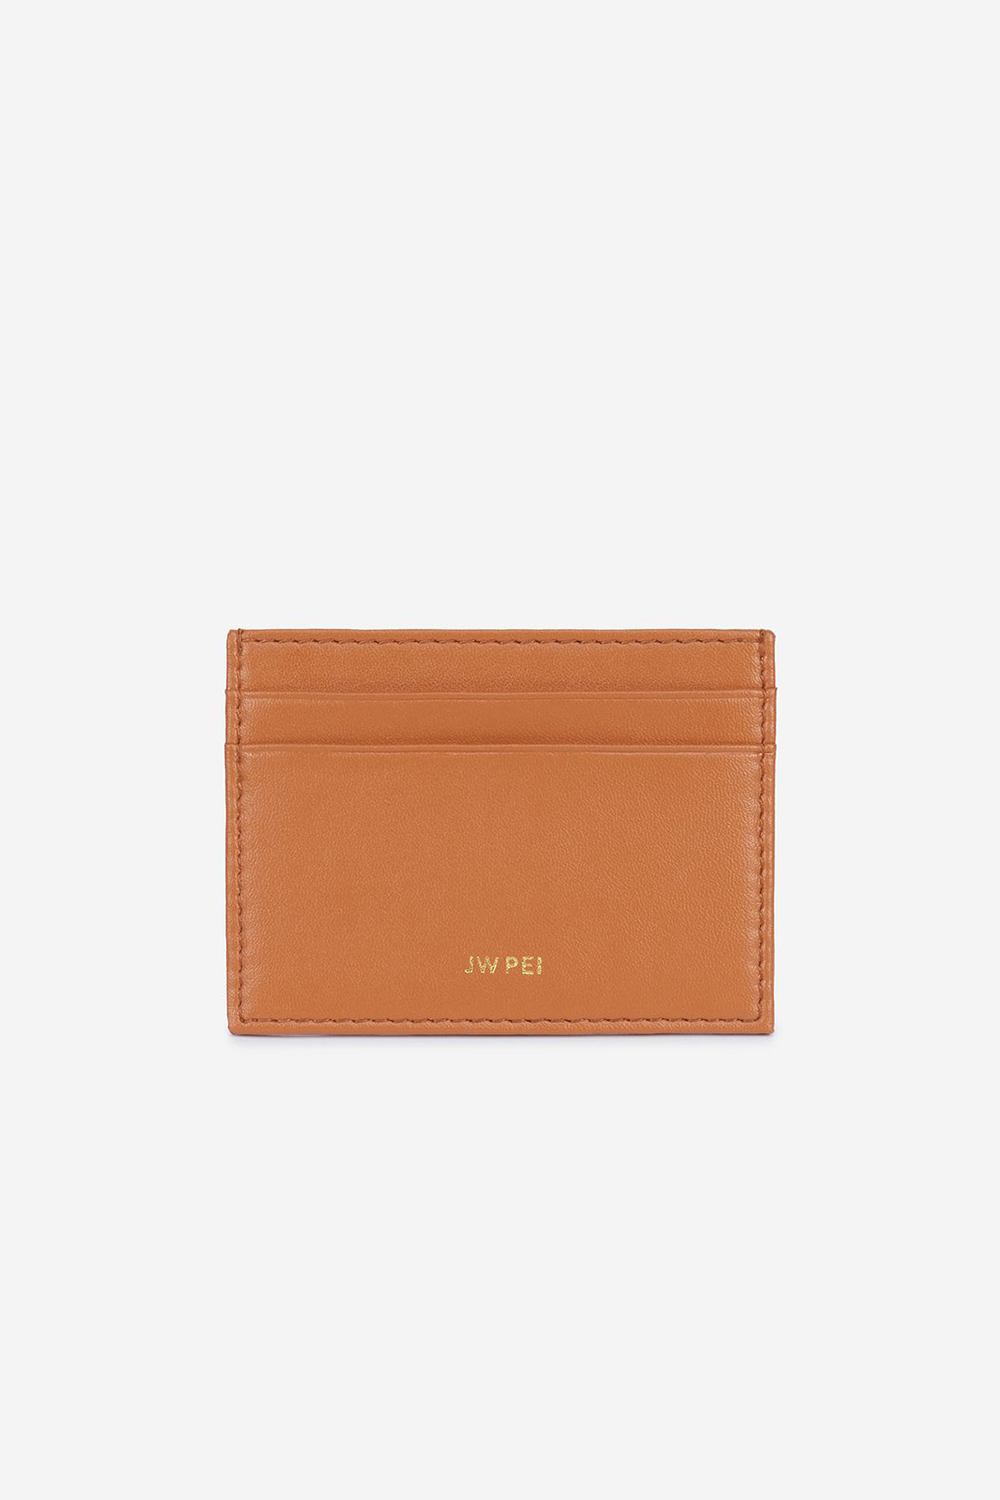 The Card Holder in Tan